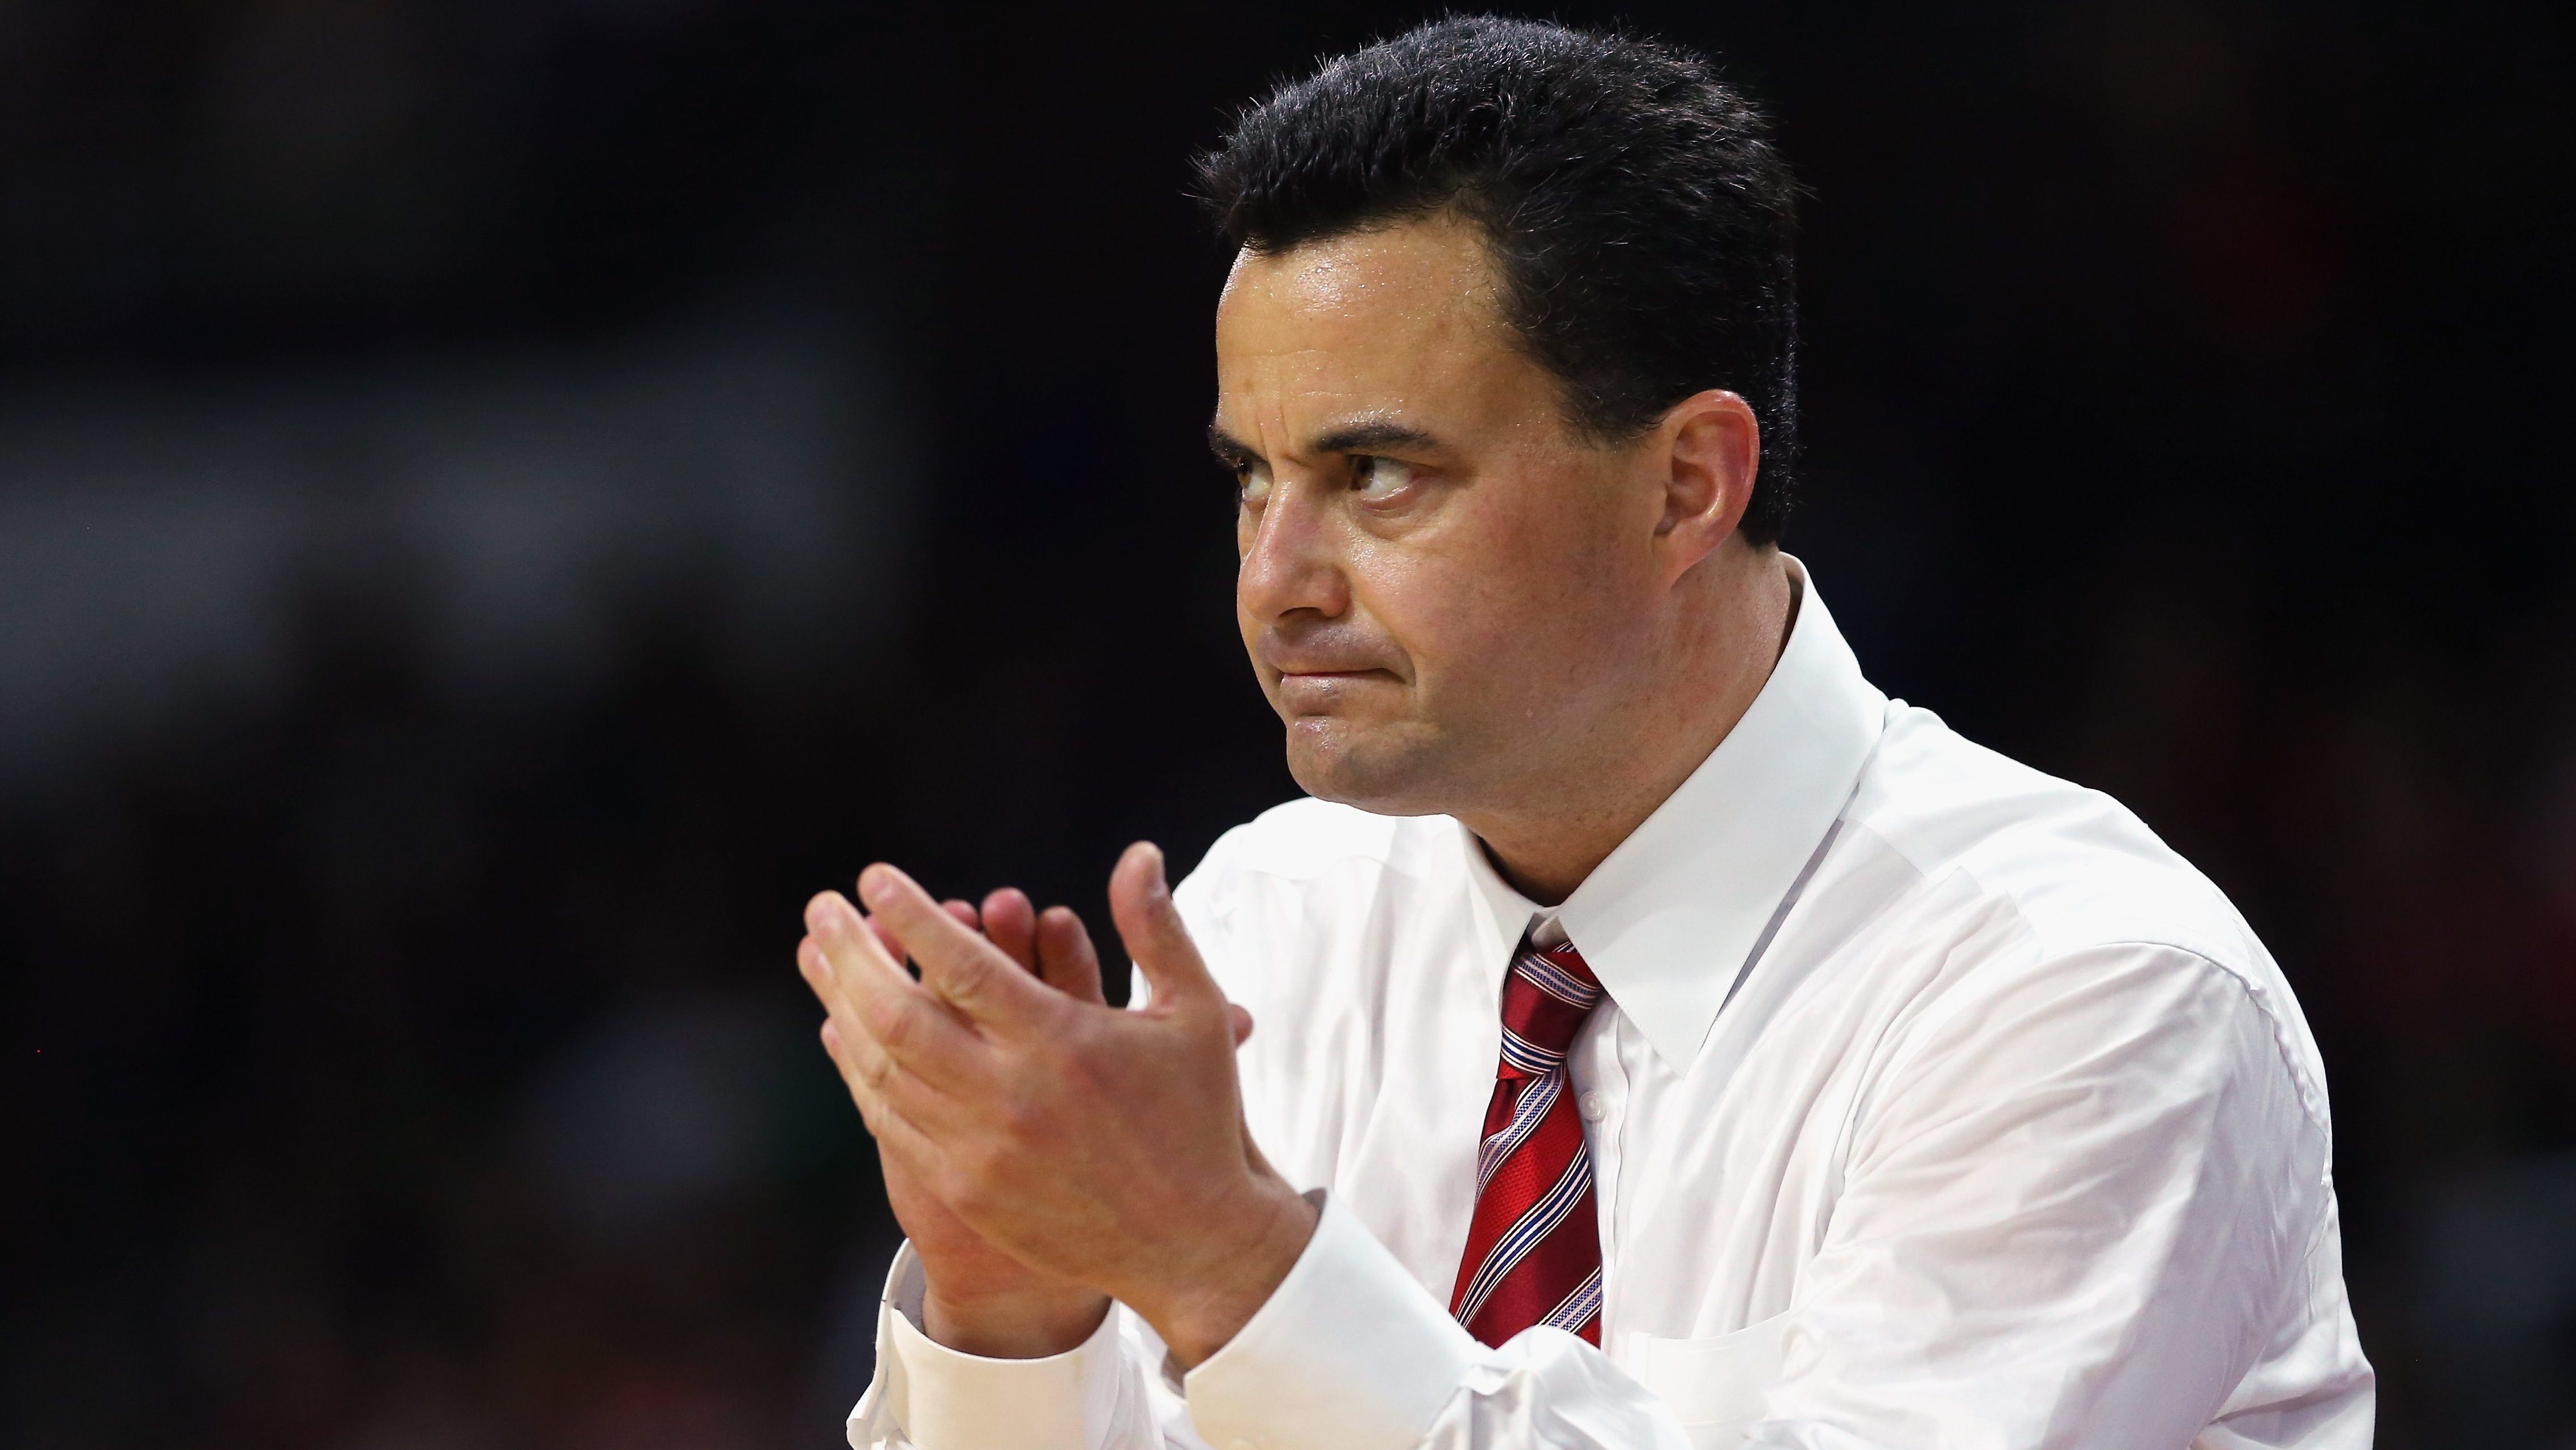 PROVIDENCE, RI - MARCH 17: Head coach Sean Miller of the Arizona Wildcats reacts in the first half against the Wichita State Shockers during the first round of the 2016 NCAA Men's Basketball Tournament at Dunkin' Donuts Center on March 17, 2016 in Providence, Rhode Island. (Photo by Jim Rogash/Getty Images)